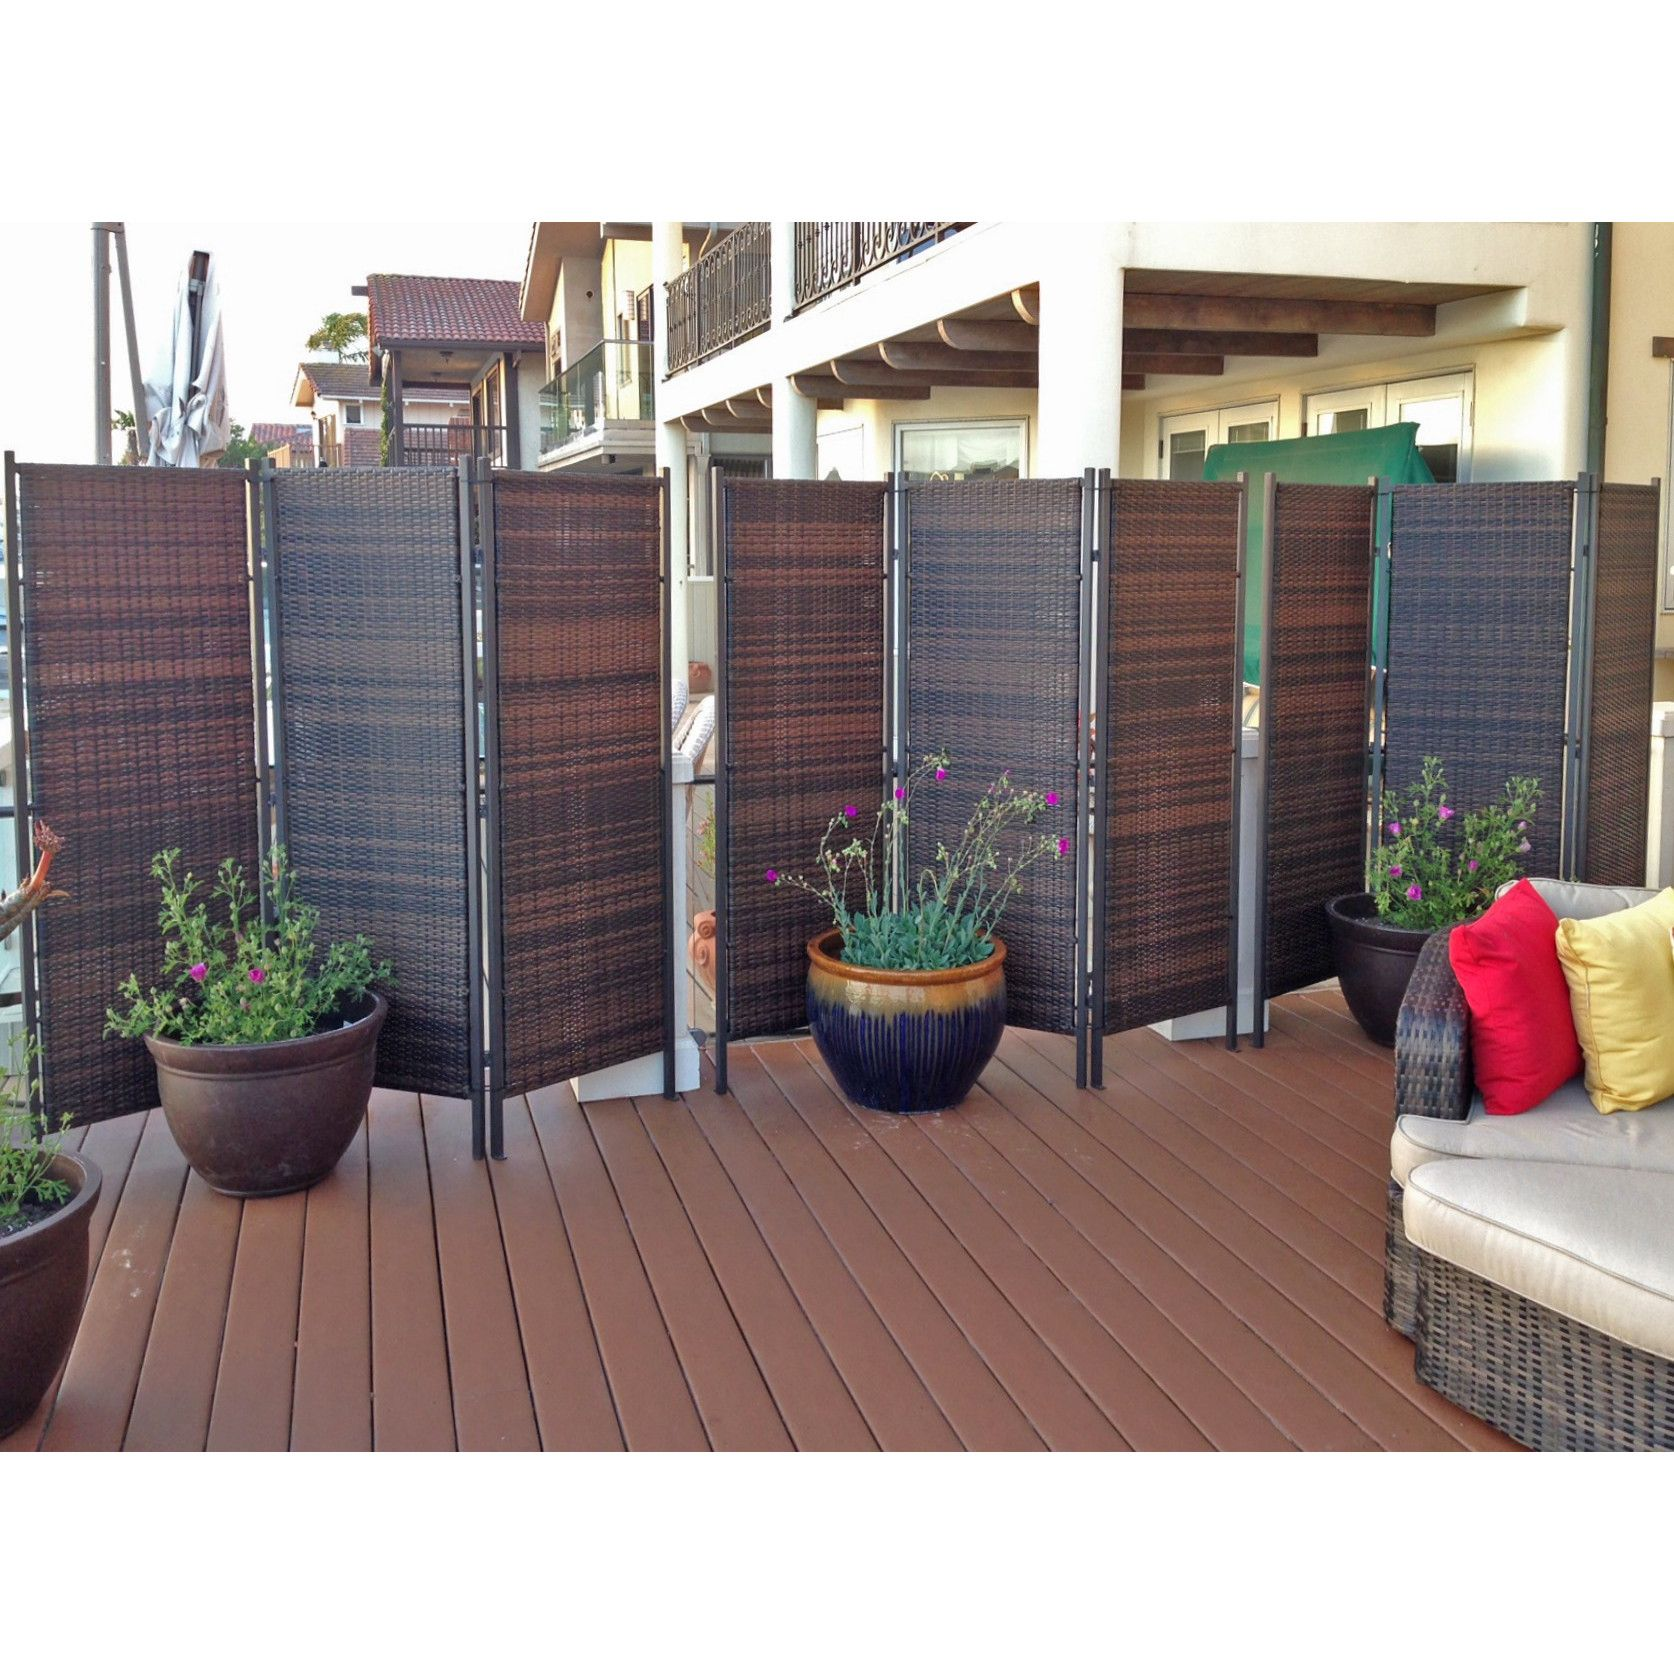 Beau This Sturdy Outdoor Wicker Privacy Screen Partition Is Perfect For Shared  Spaces Where There Are No Fences.